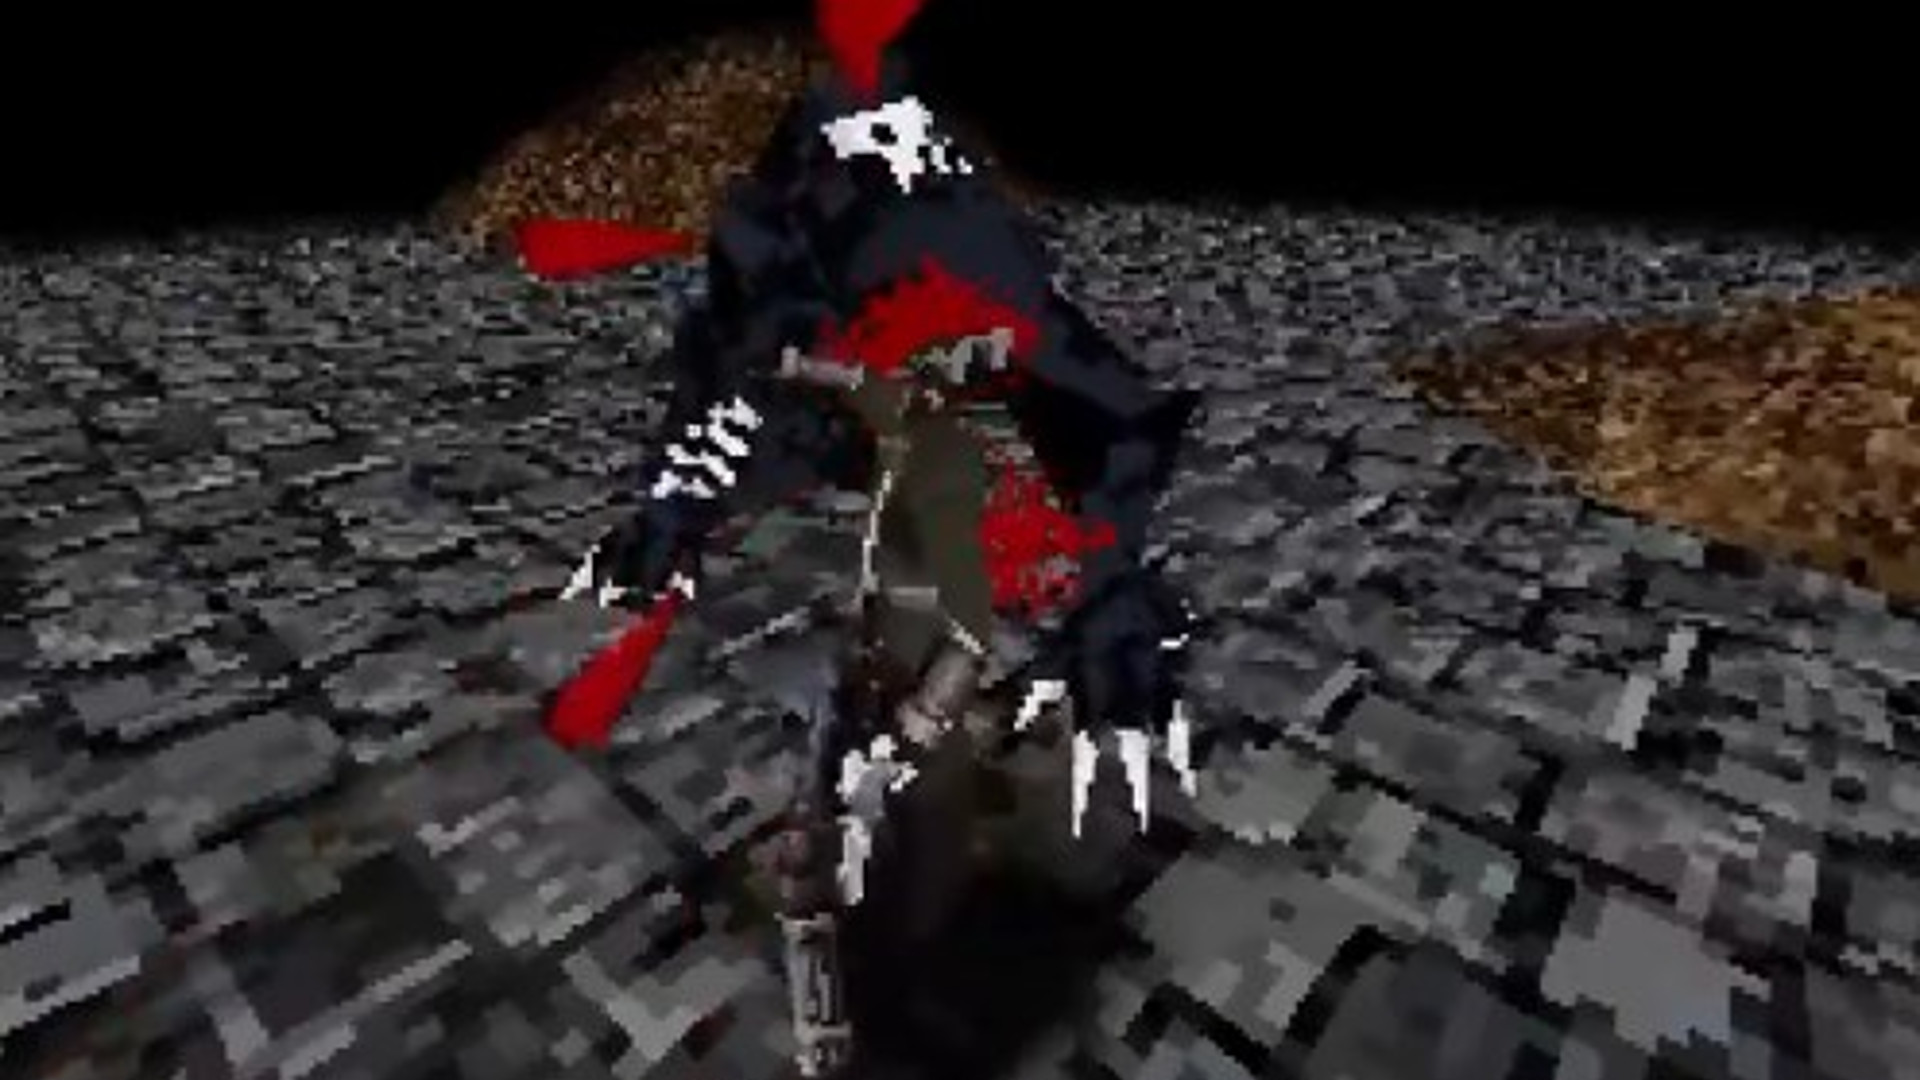 Bloodborne is remake as a PS1 game